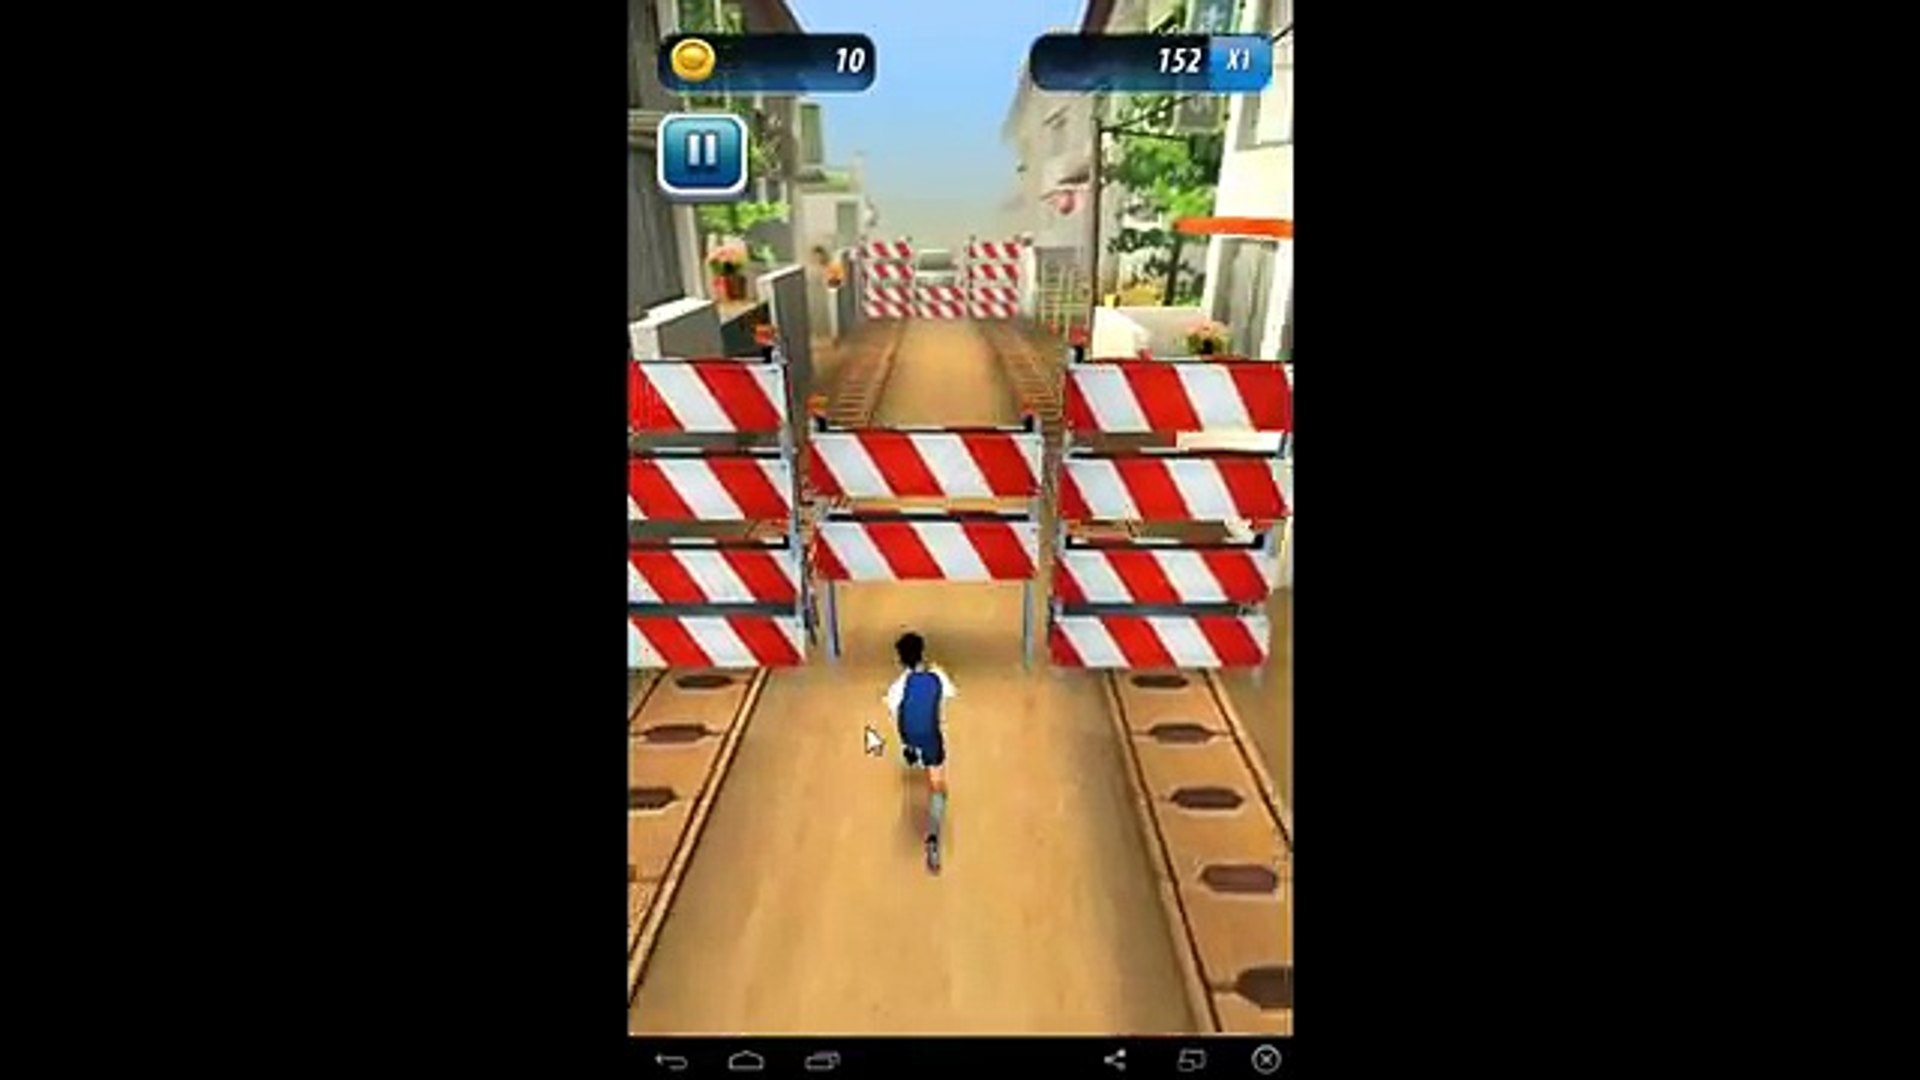 Soccer Runner: Football rush! ( Аналог Игры - Subway Surfers ) - for Android and iOS GamePlay